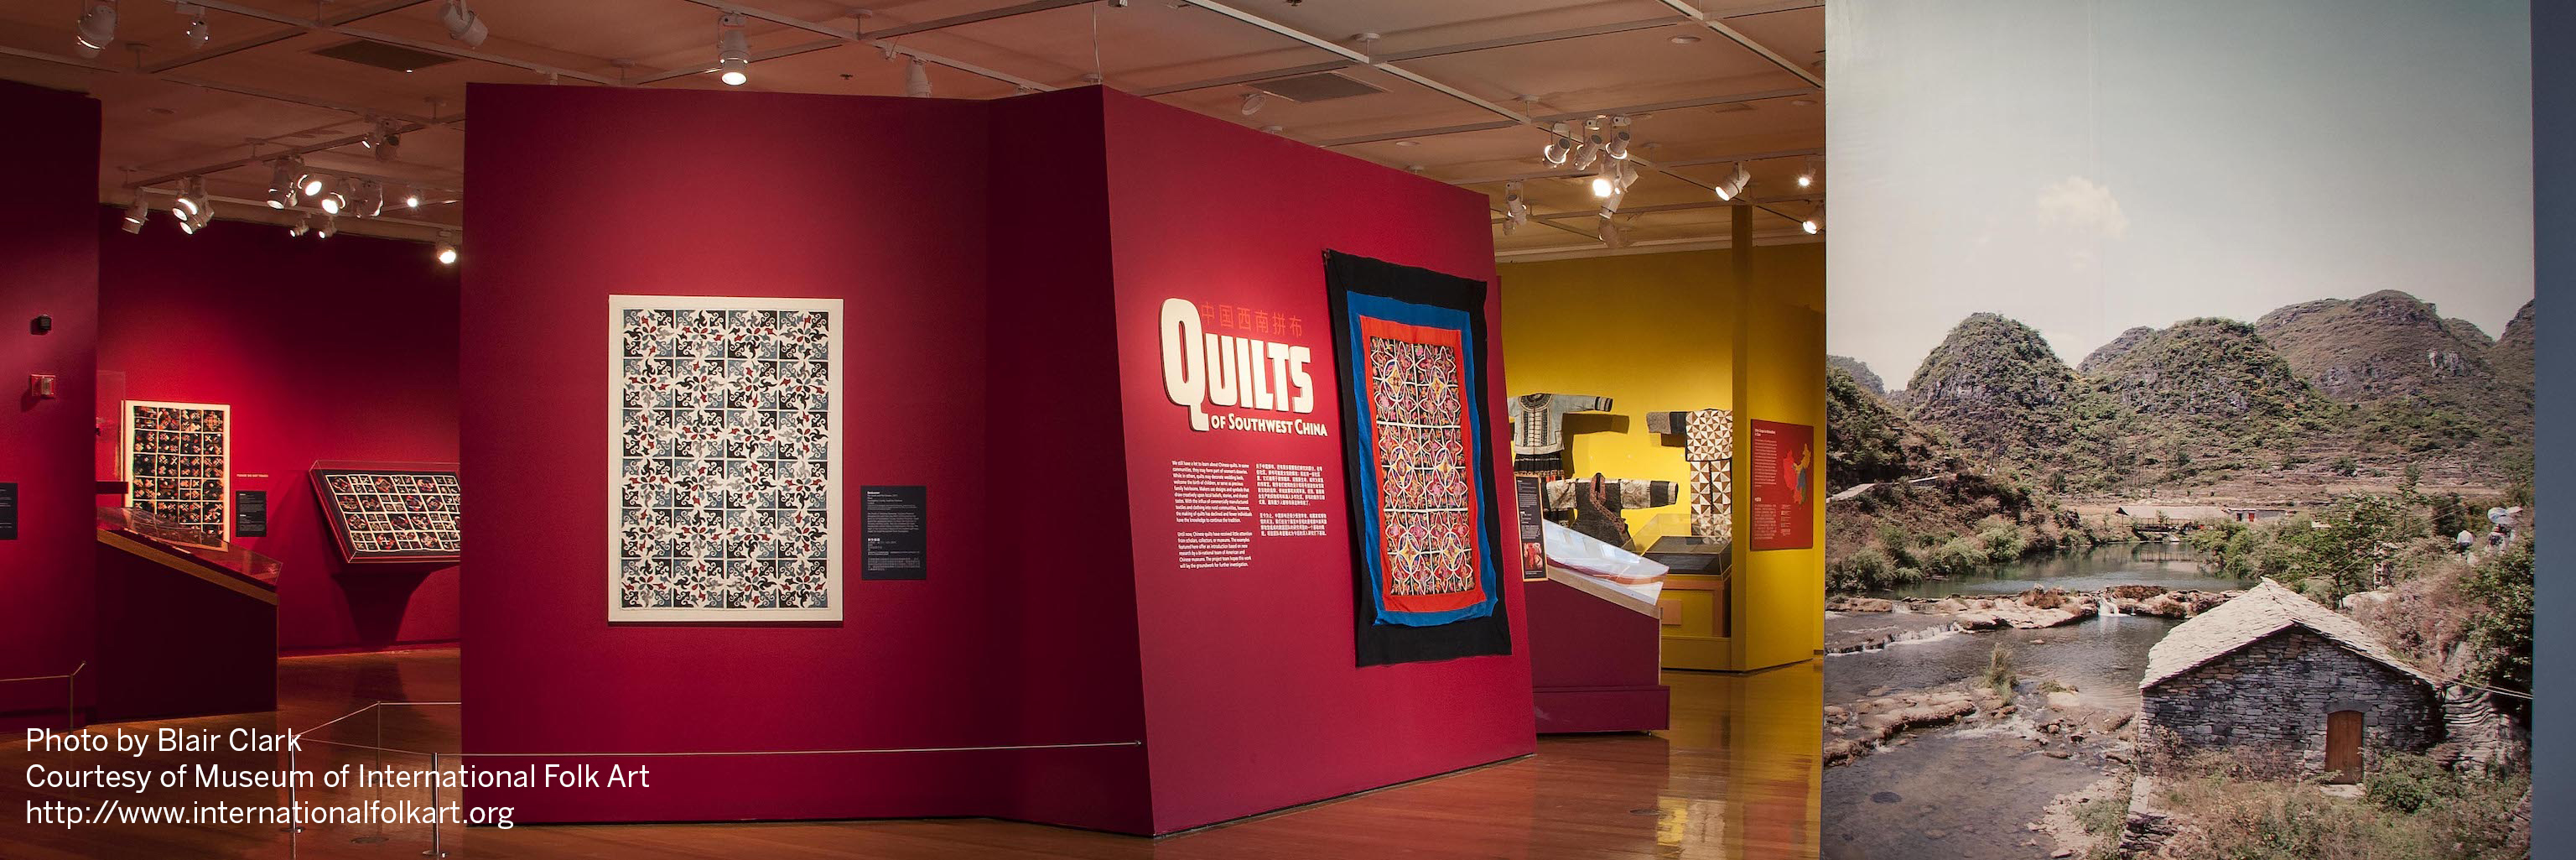 Photo by Blair Clark, courtesy of Museum of International Folk Art.